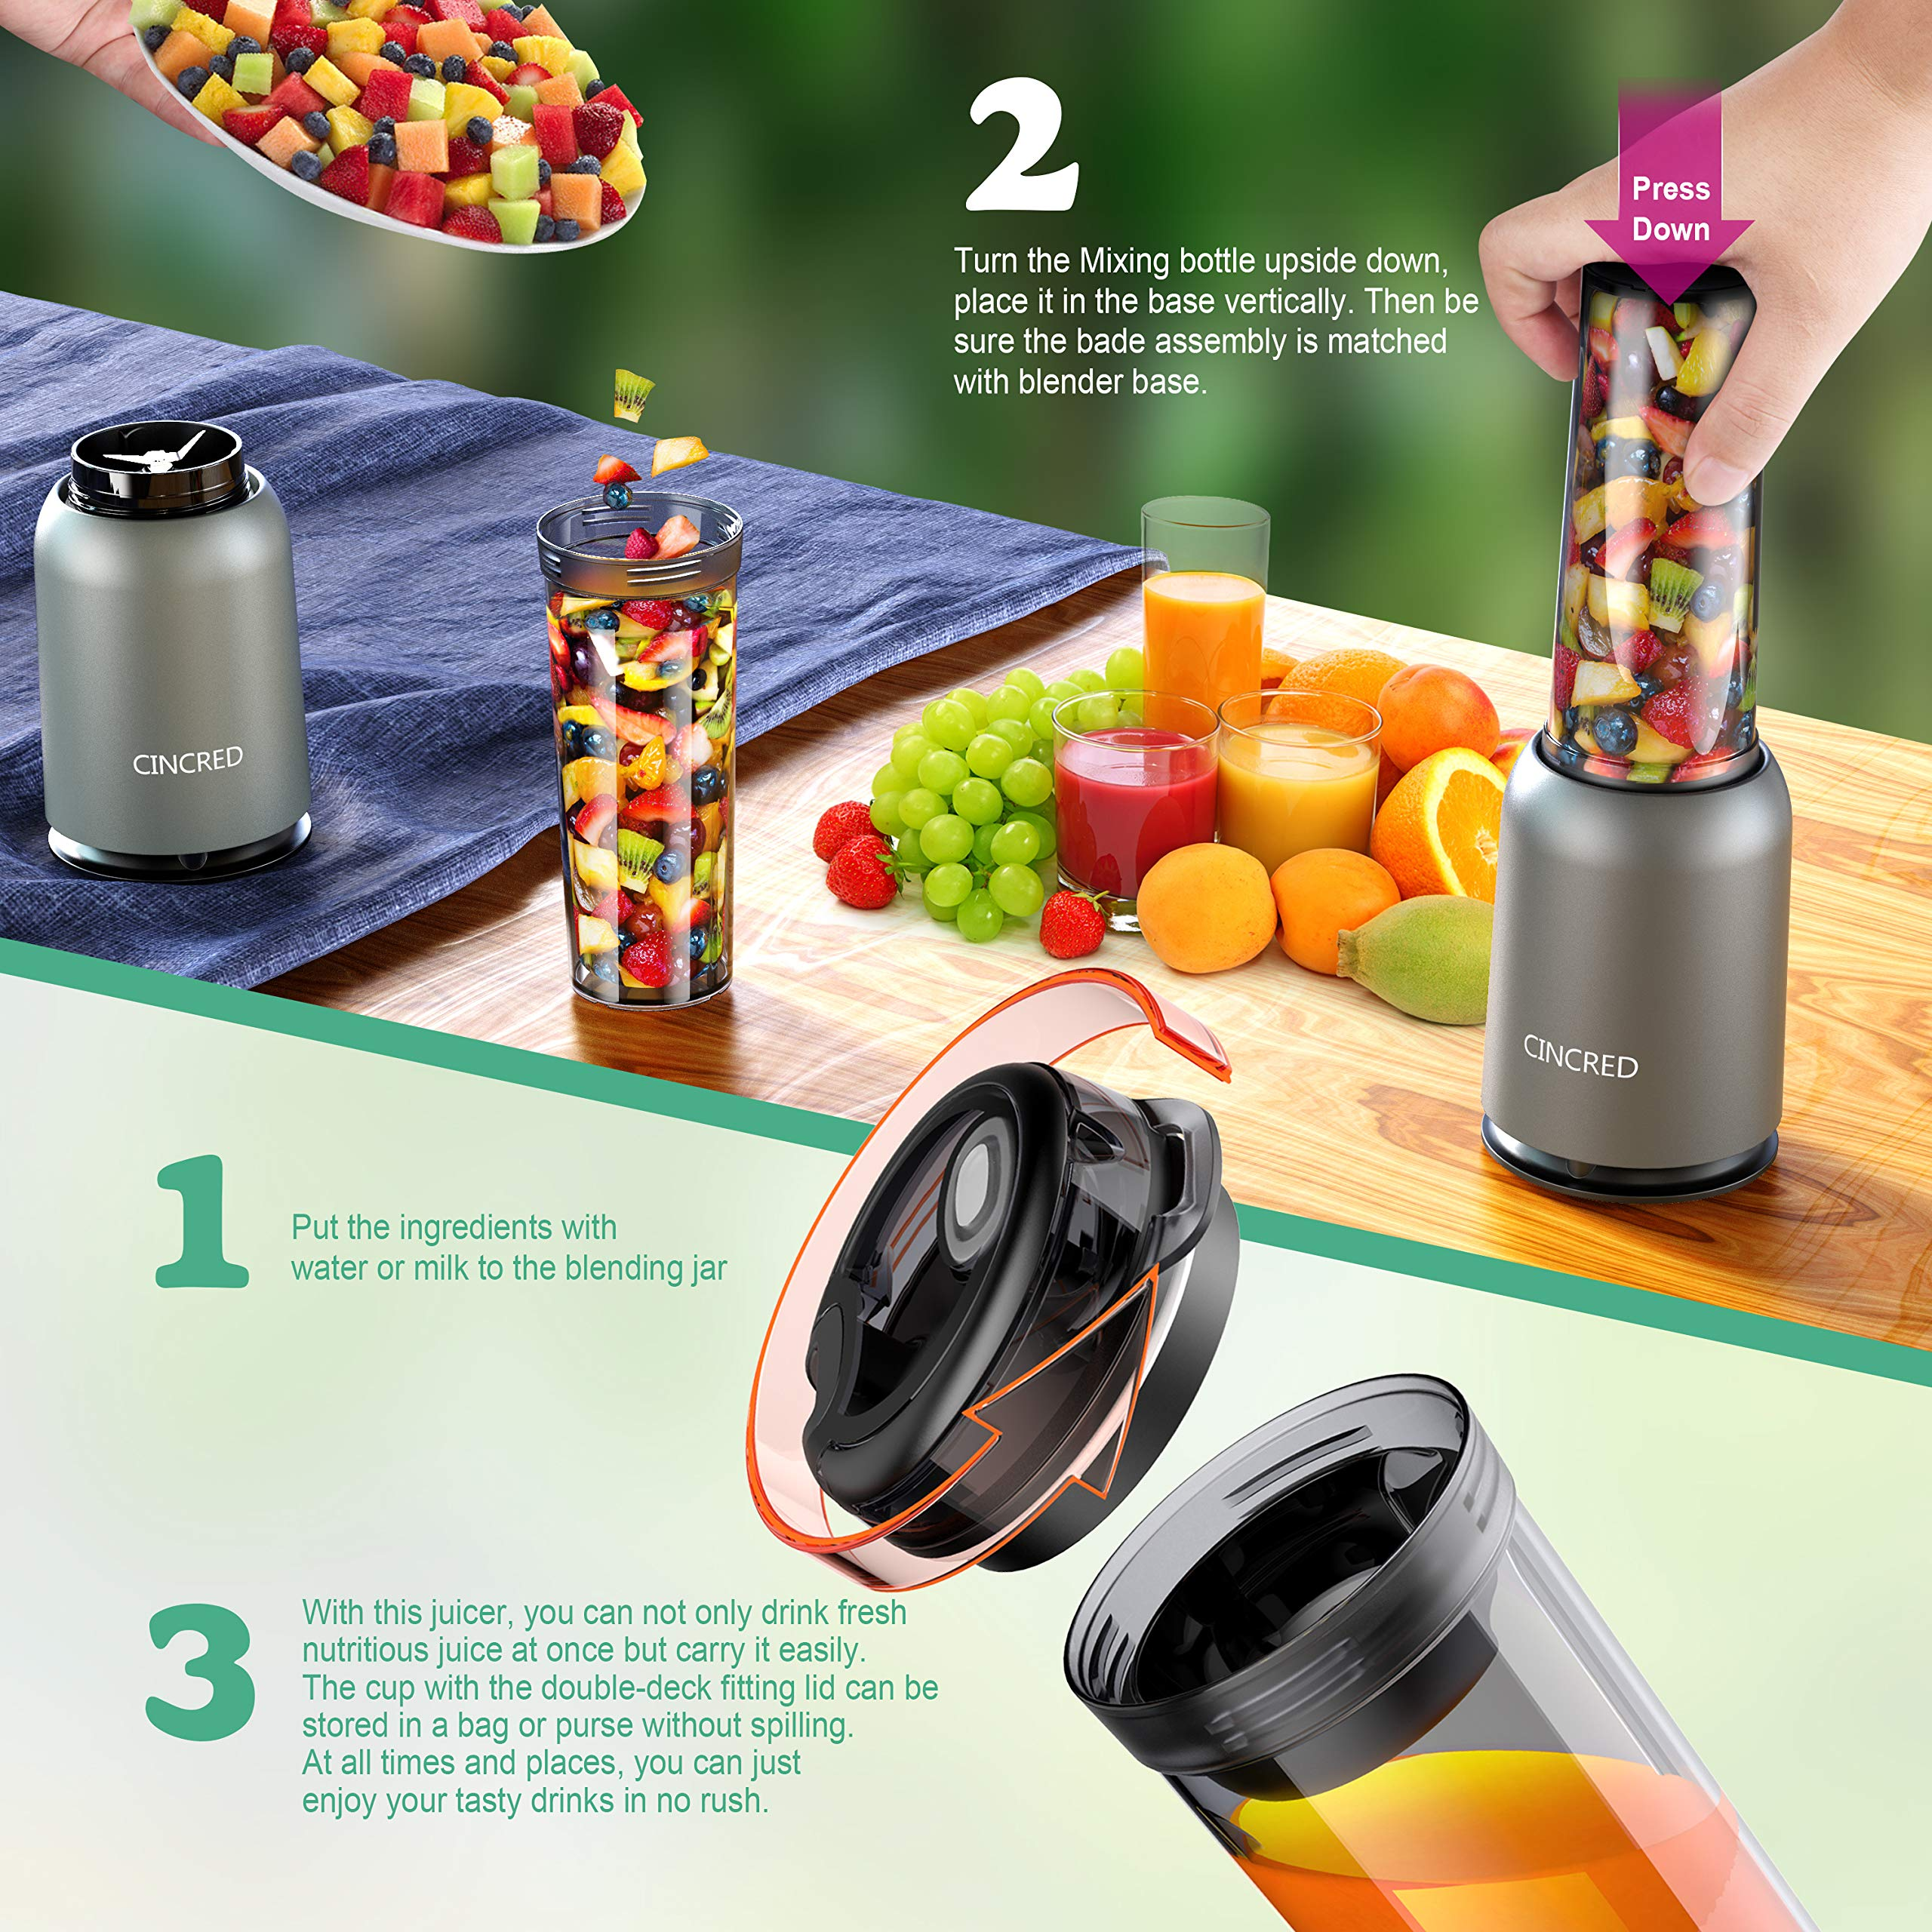 Updated 2019 Version Professional Personal Countertop Blender for Milkshake, Frozen Fruit Vegetables Drinks, Smoothie, Ice, Small Mini Portable Single Food Bullet Blenders Processor Shake Mixer Maker with Cup for Home Kitchen by Cincred (Image #2)